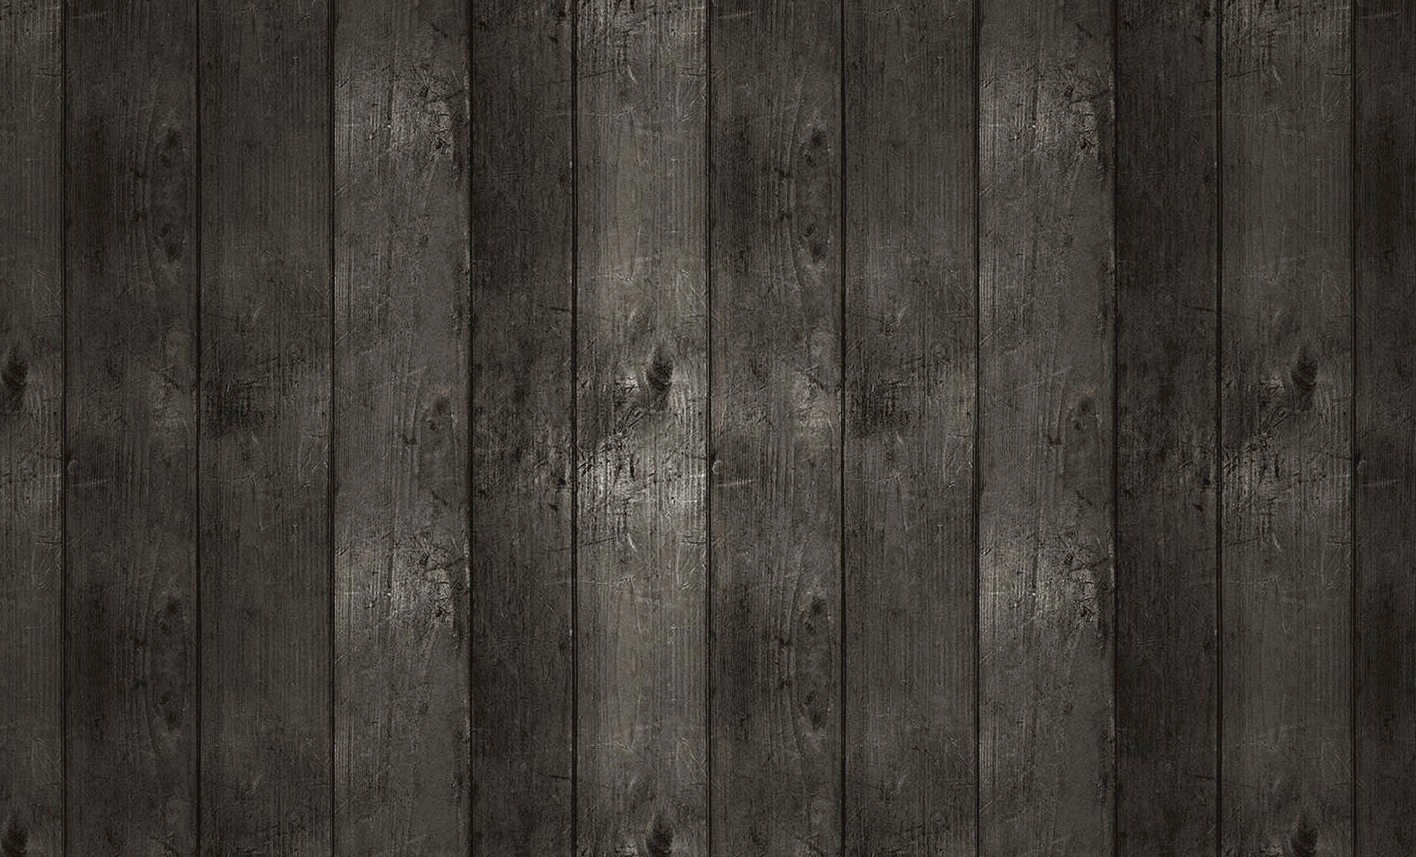 Gt Brown Wood Background Black Wood Background Black Wood Texture Black Wood